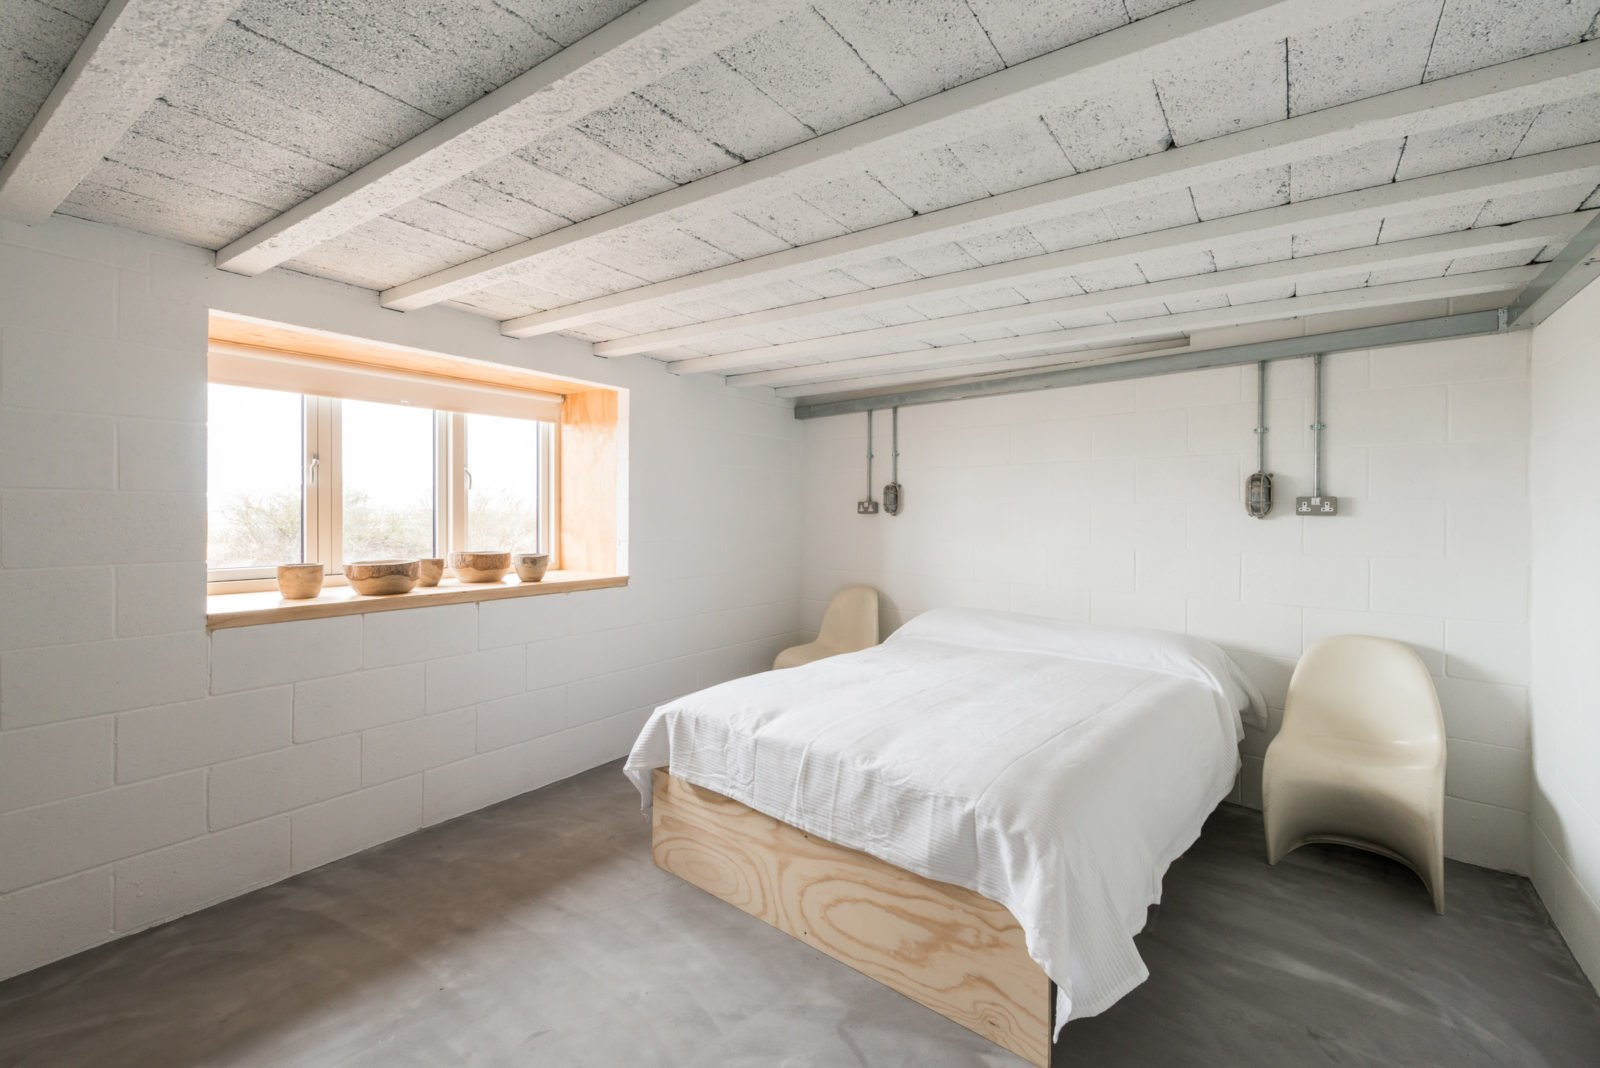 Bedroom, Chair, Bed, and Concrete Floor  Photo 4 of 11 in Formerly a Farm Workers' Cottage, This Cool Norfolk Home Costs Just Over $1 Million